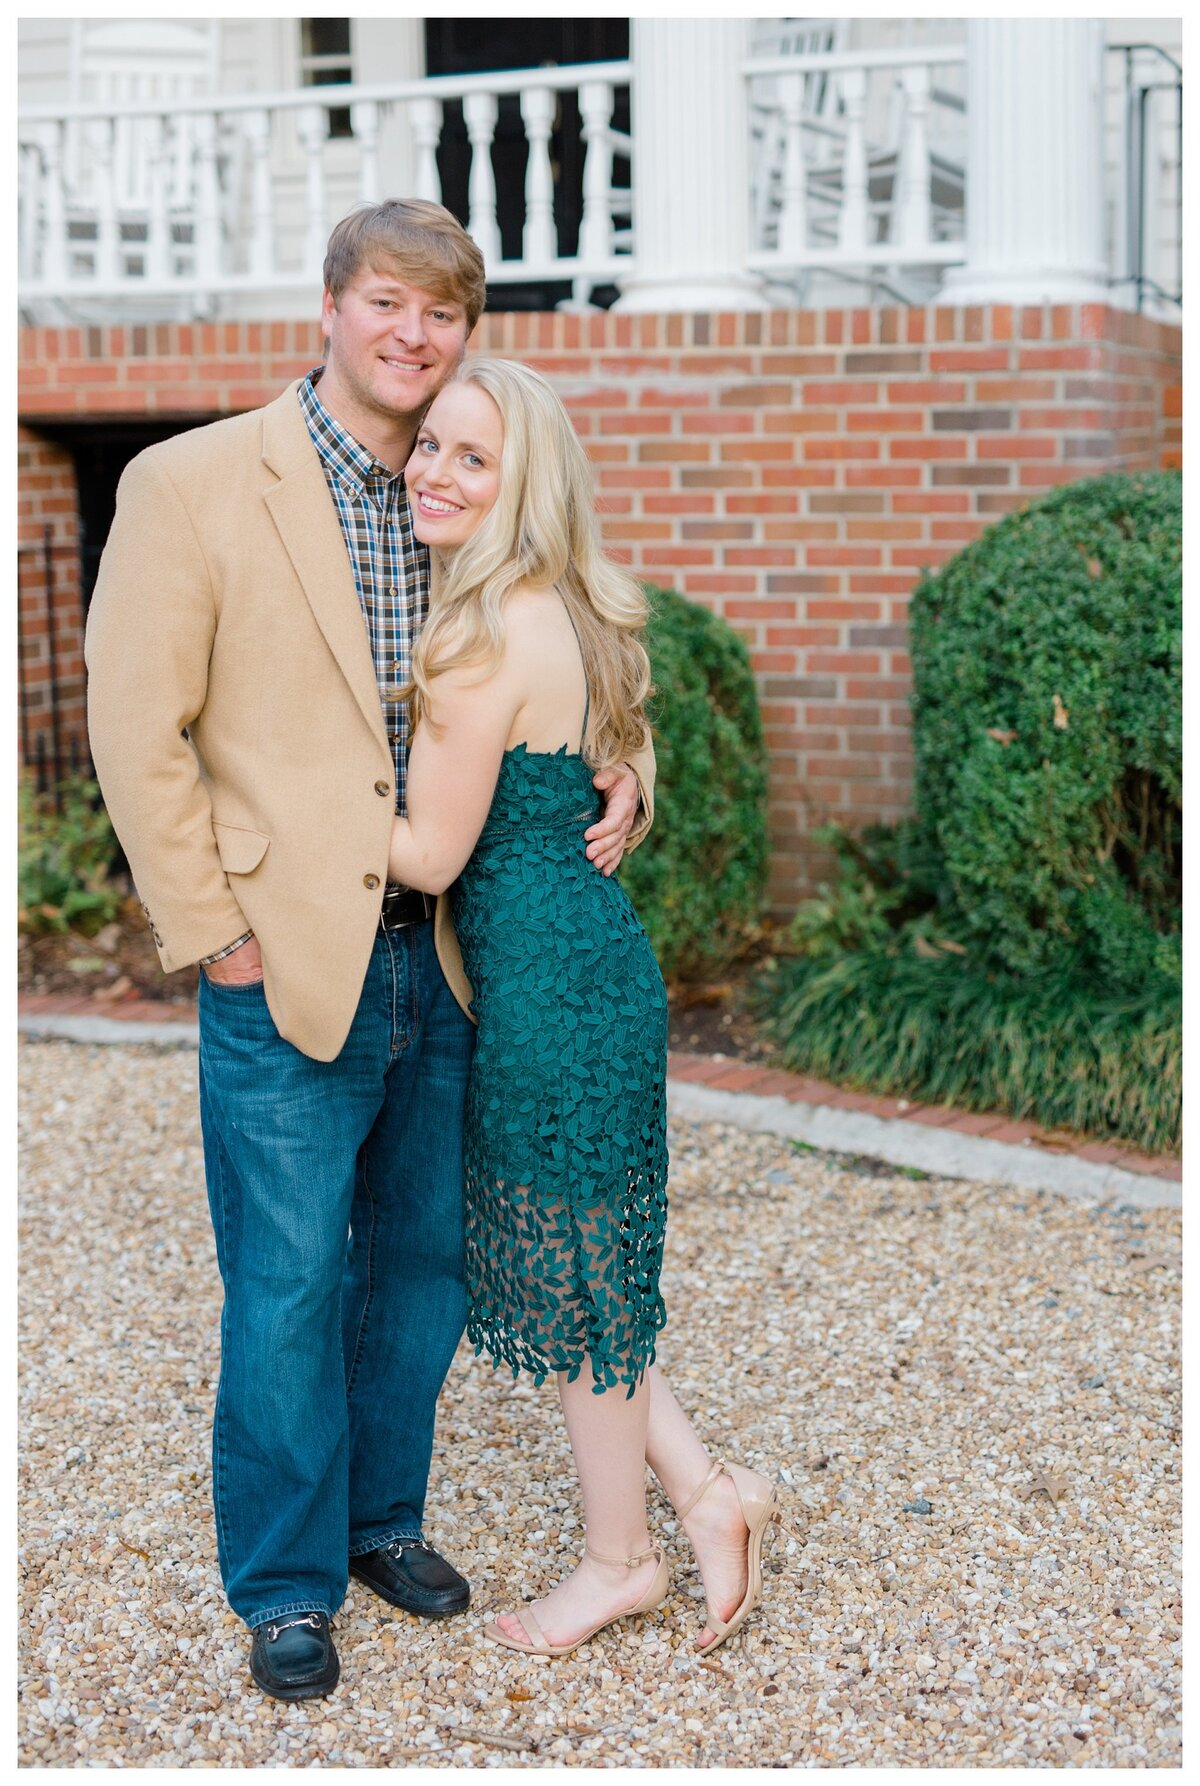 canady-engagements-atlanta-wedding-photographer-37